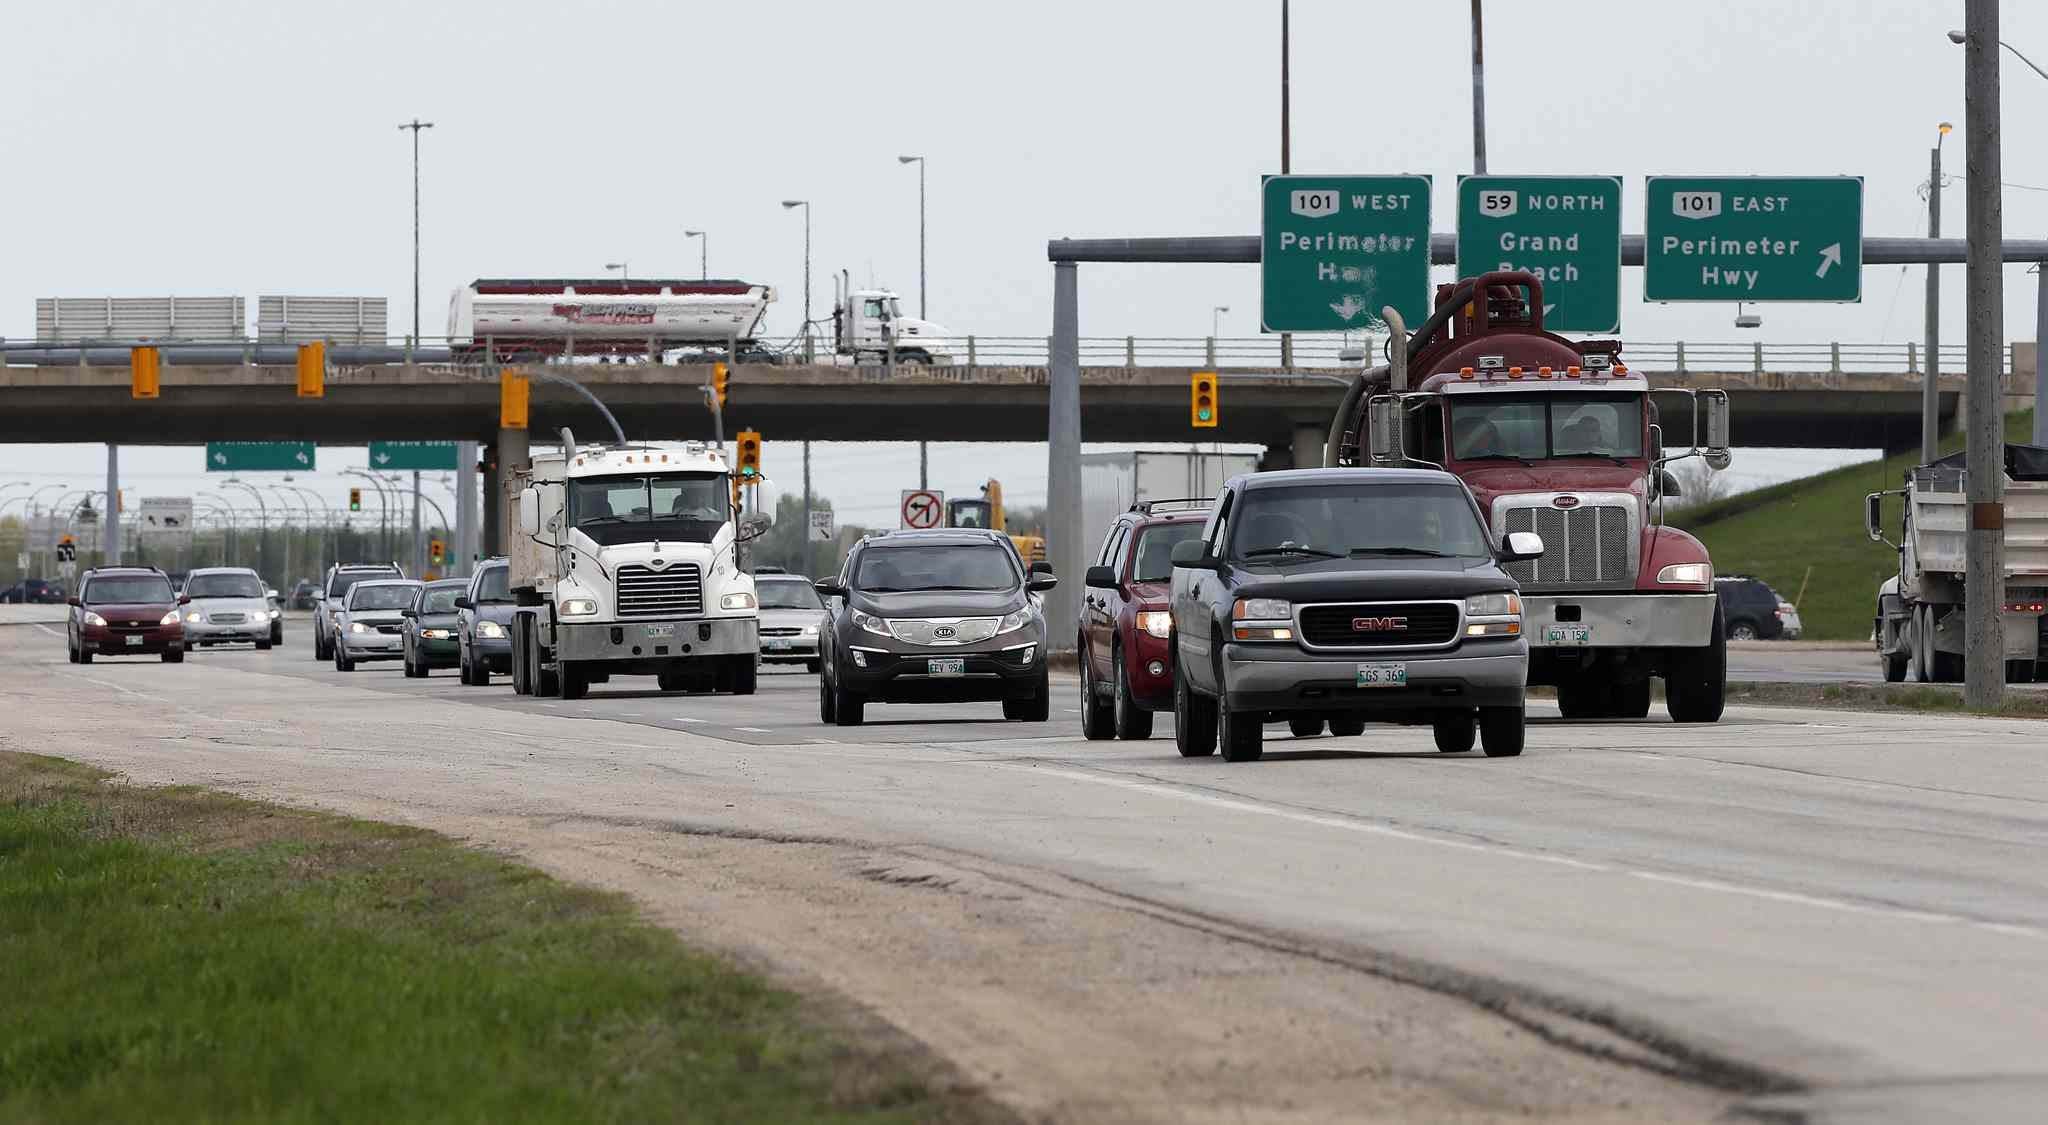 The interchange at Hwy. 59 and the Perimeter Highway has become the busiest intersection in the province outside the city because of increasing truck traffic and residential and commercial development.